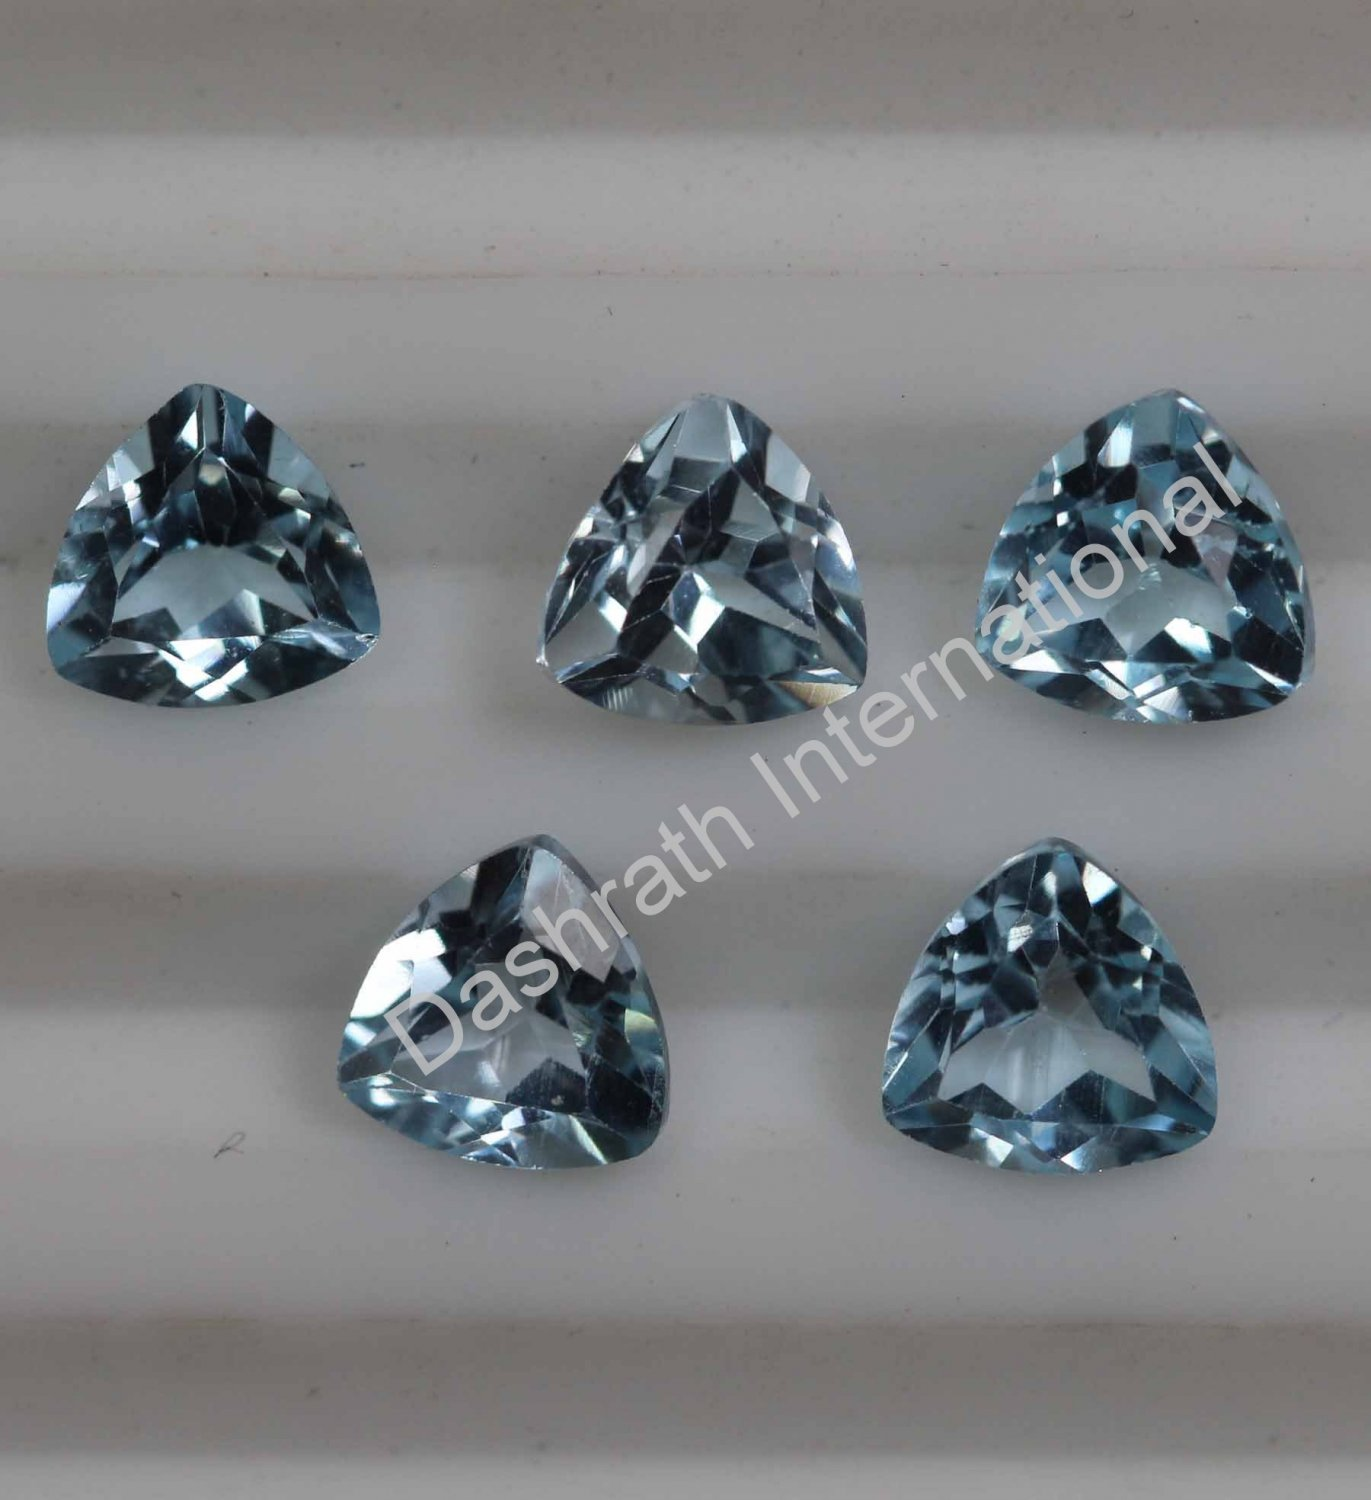 7mm Natural Sky Blue Topaz Faceted Cut Trillion 25 Pieces Lot Top Quality Loose Gemstone